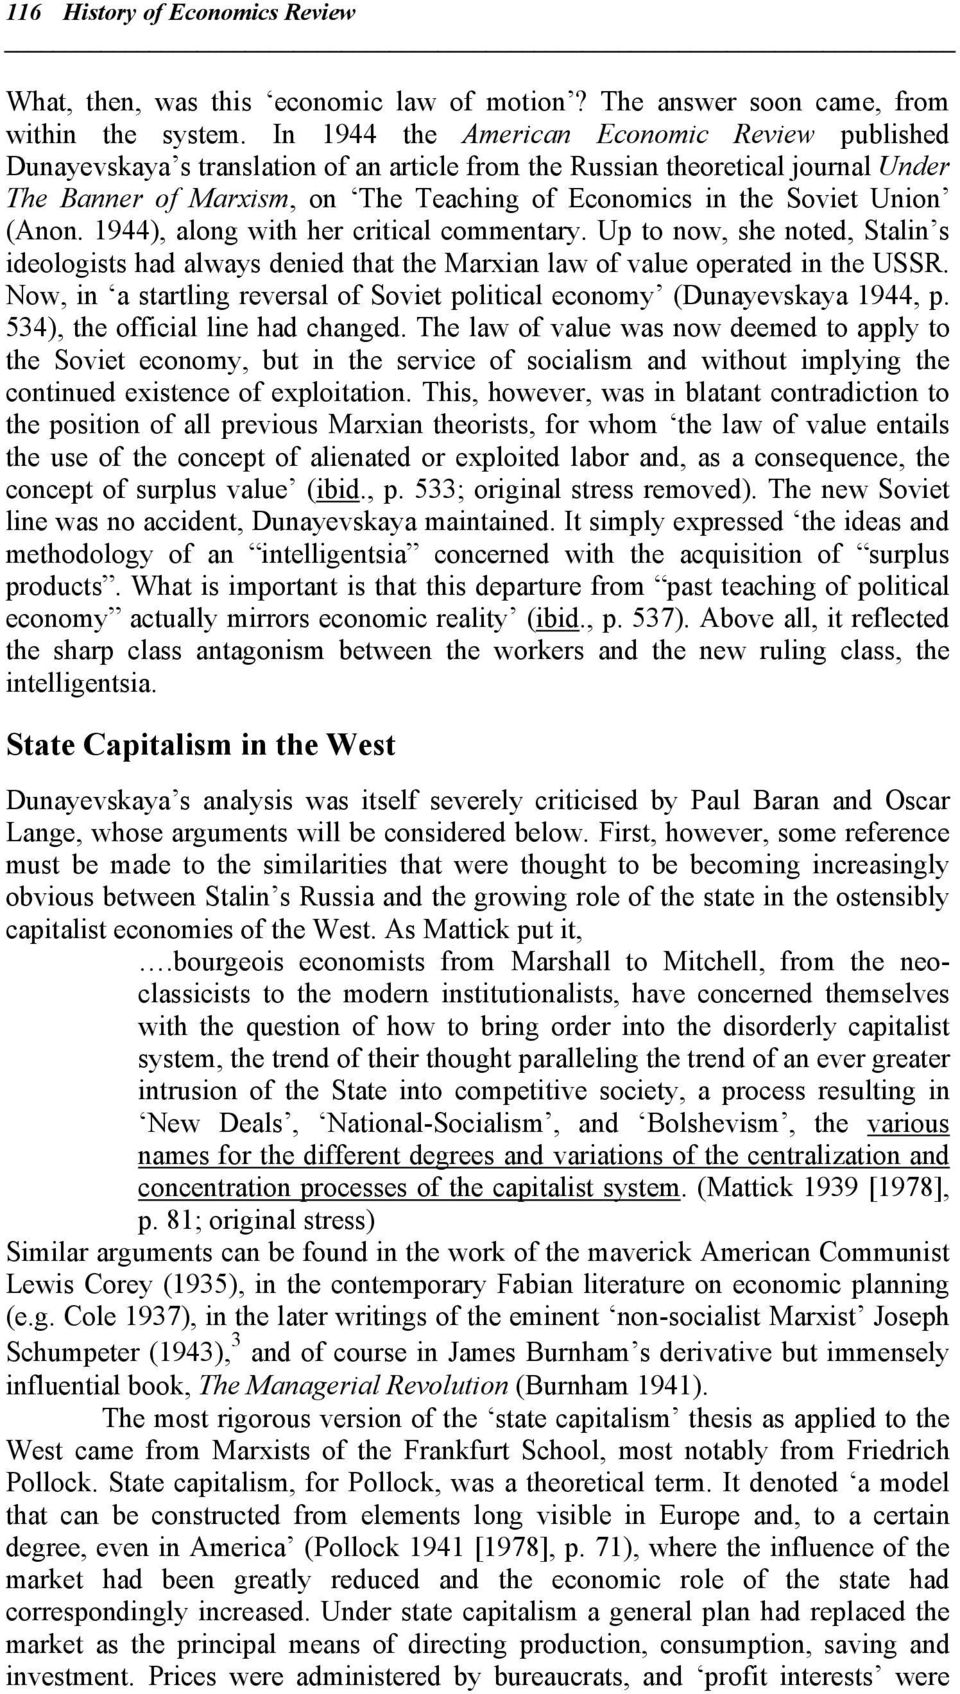 Union (Anon. 1944), along with her critical commentary. Up to now, she noted, Stalin s ideologists had always denied that the Marxian law of value operated in the USSR.